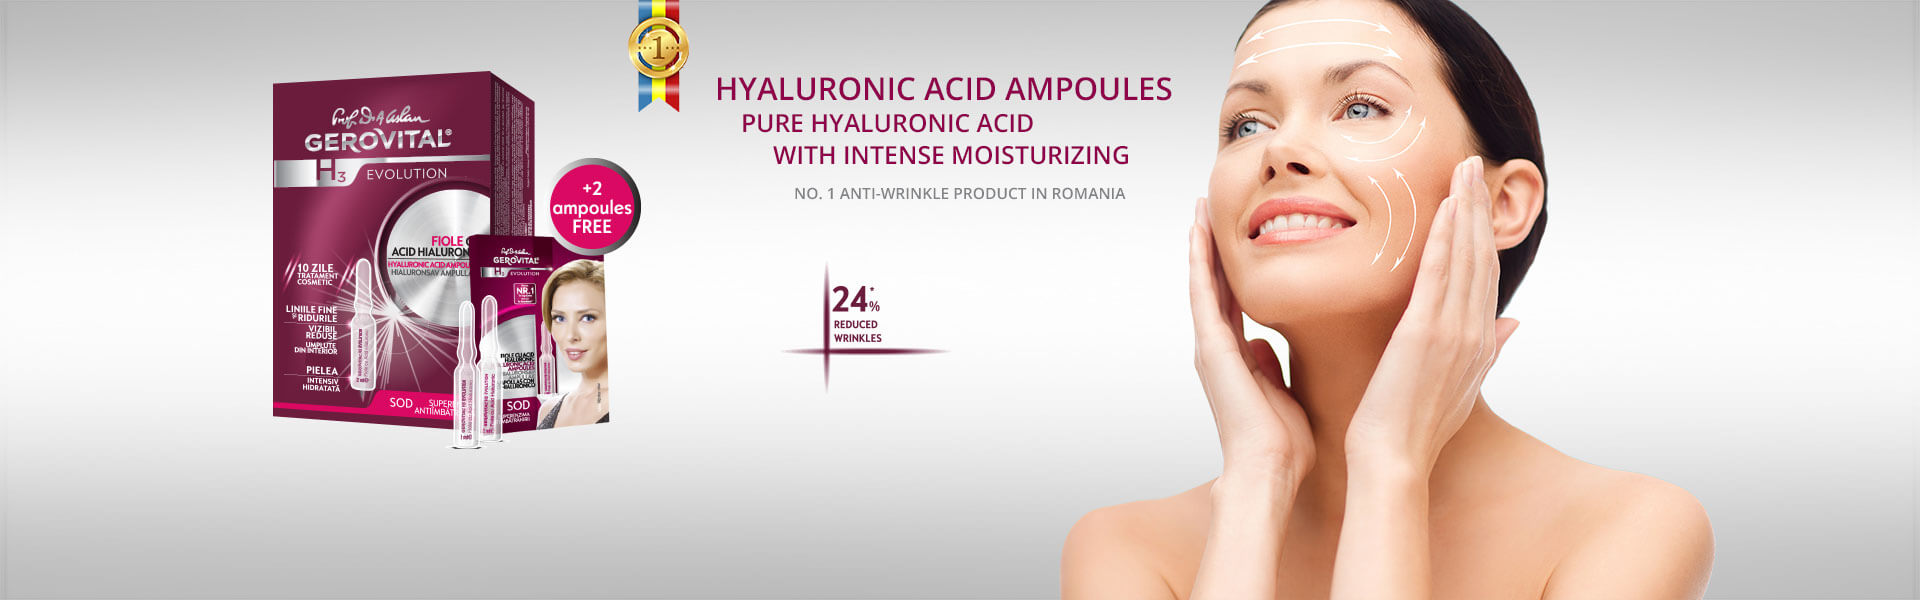 Hyaluronic acid ampoules – exclusive